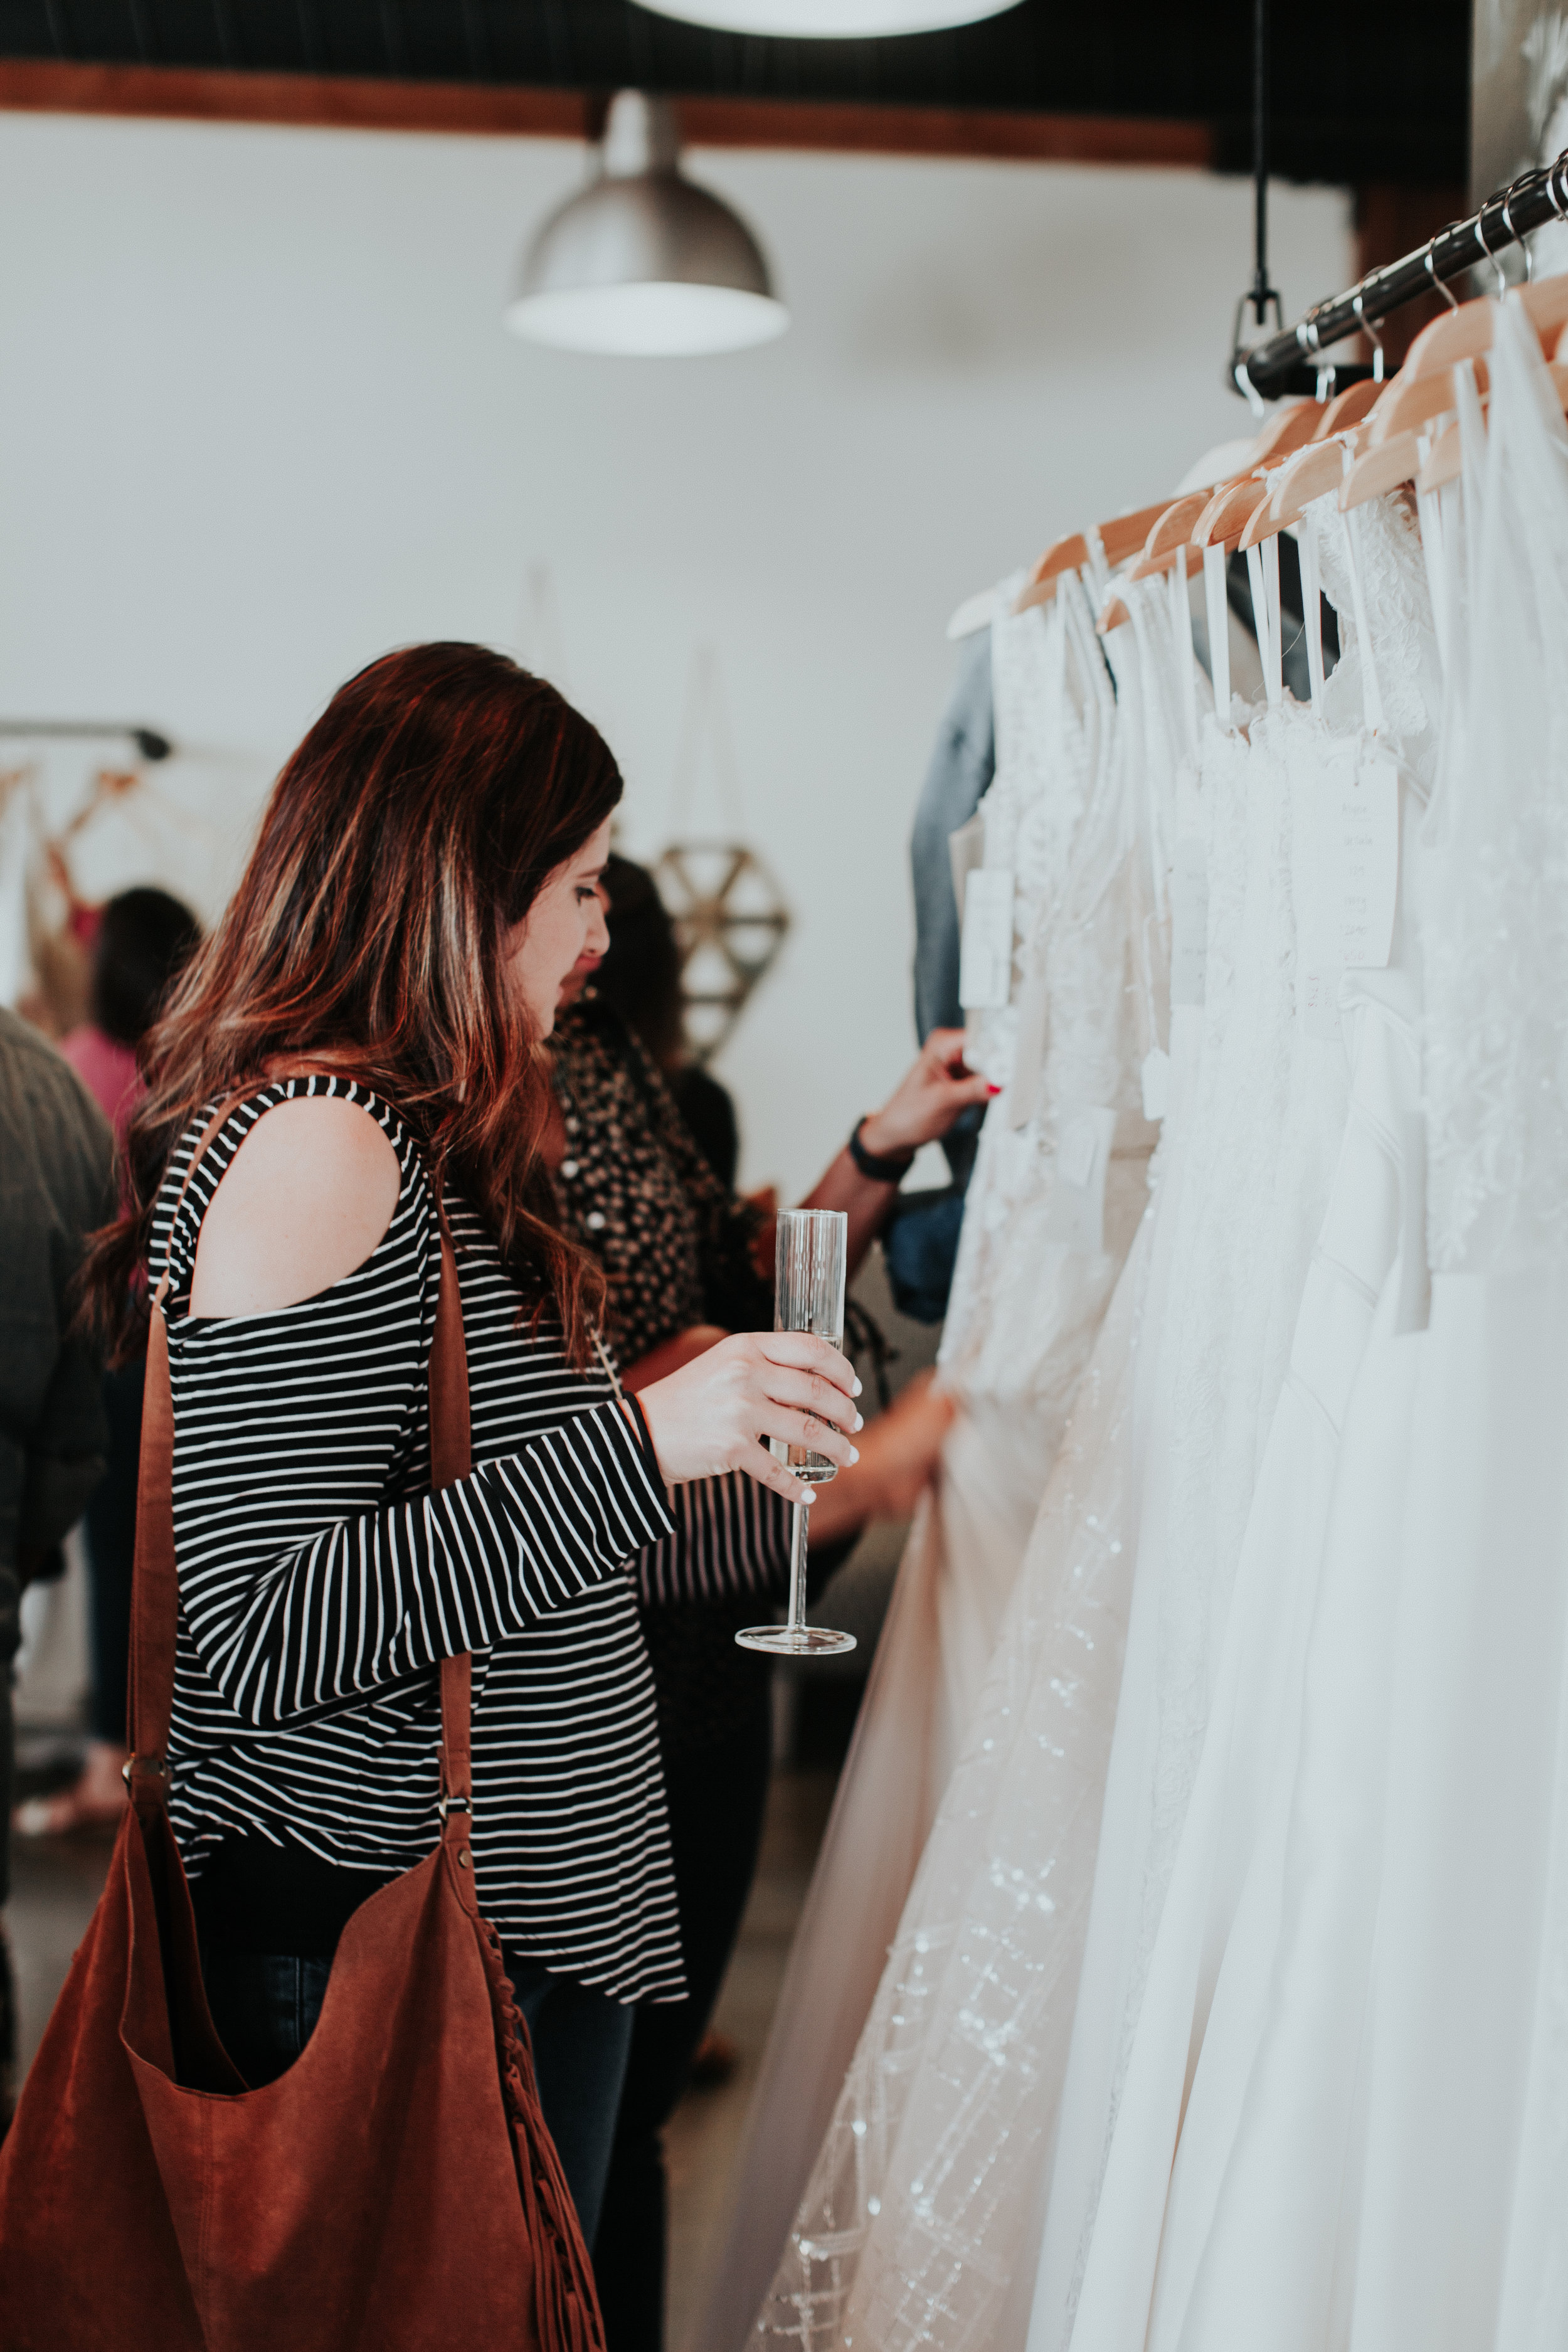 5. Inspect the Gown - The samples have been tried on by previous brides and some dresses will have a bit of wear and tear. Before you commit, look over the dress for any damages and be aware that alterations are not done in-house (however, we do have great local recommendations).Photo credit: Alexandra Wallace